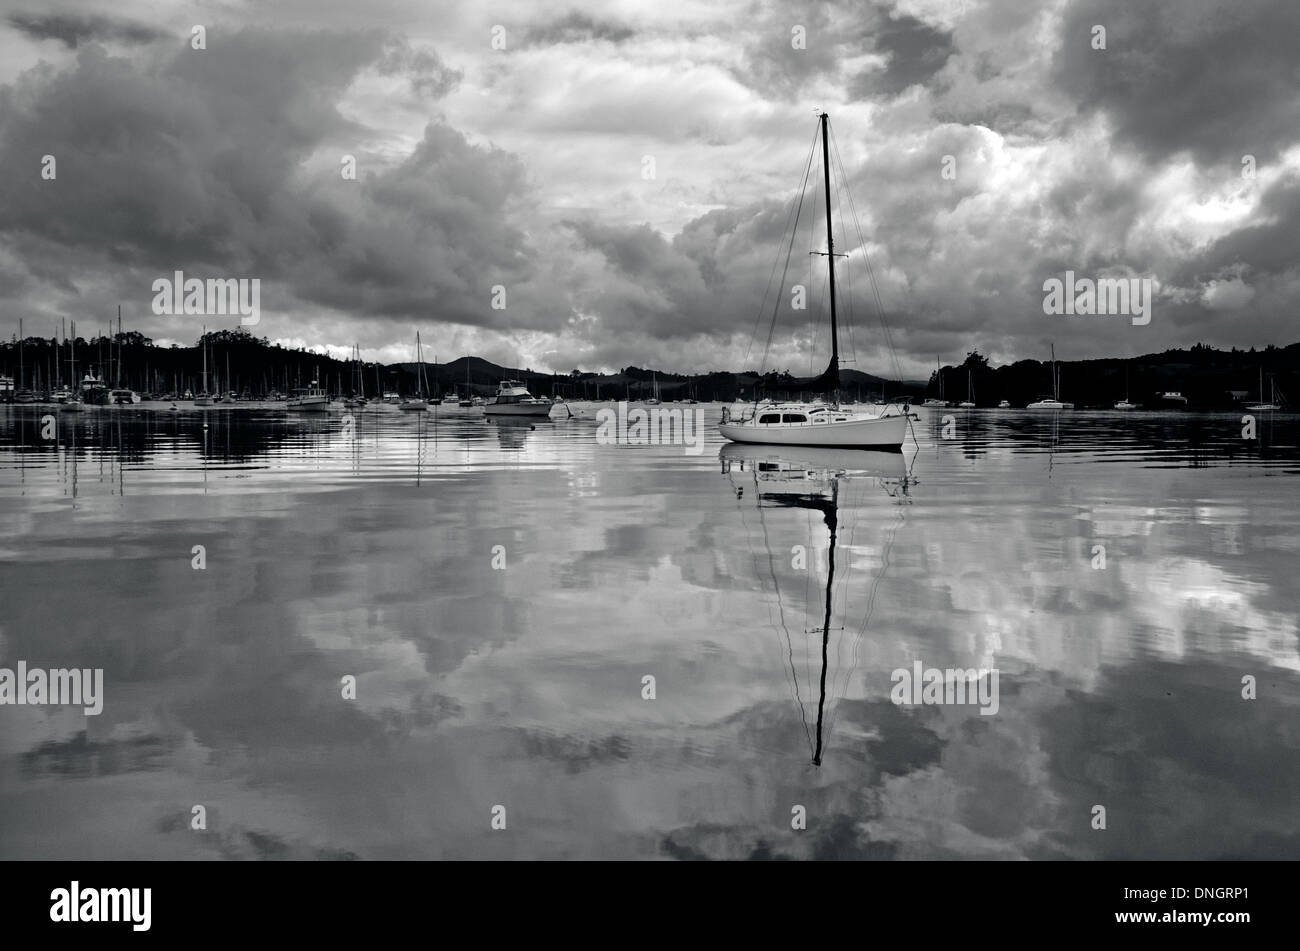 Reflection of sails boats yachts in marina waters under cloudy sky. (BW) Stock Photo